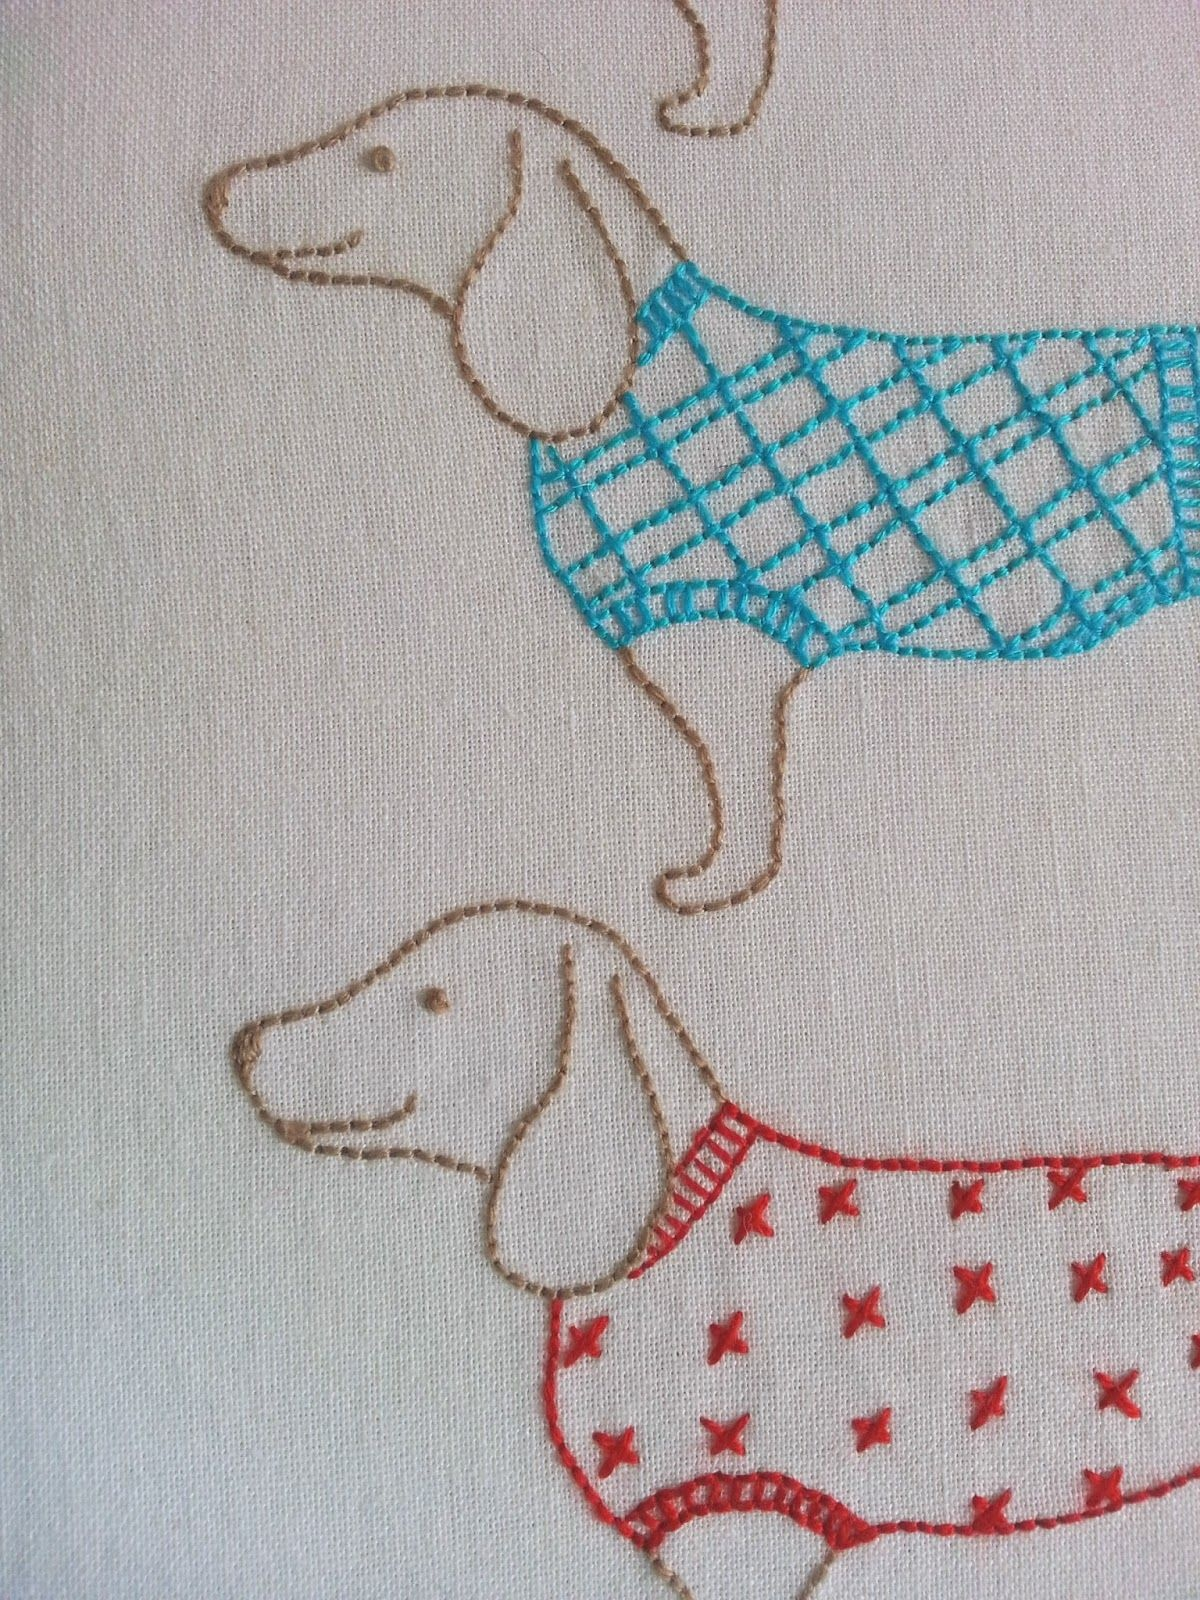 Ric-Rac: Moving On - Free Sausage Dog Embroidery Pattern   Crafts - Free Printable Dachshund Sewing Pattern